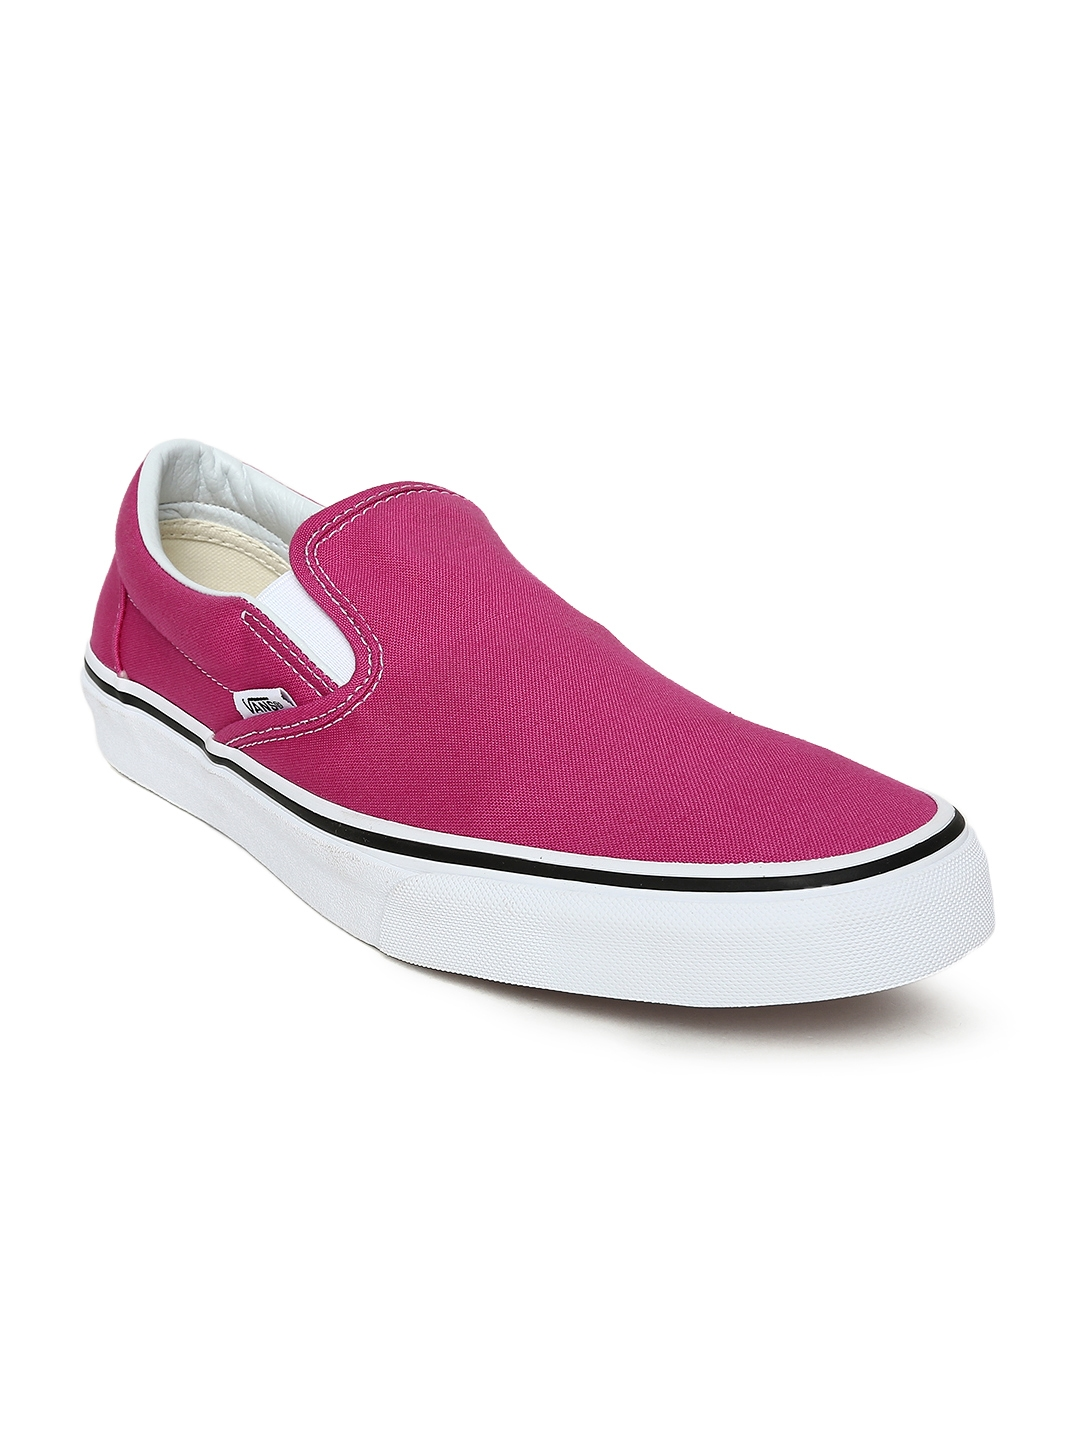 Buy Vans Unisex Pink Classic Slip On Sneakers - Casual Shoes for ... 885ef6d65